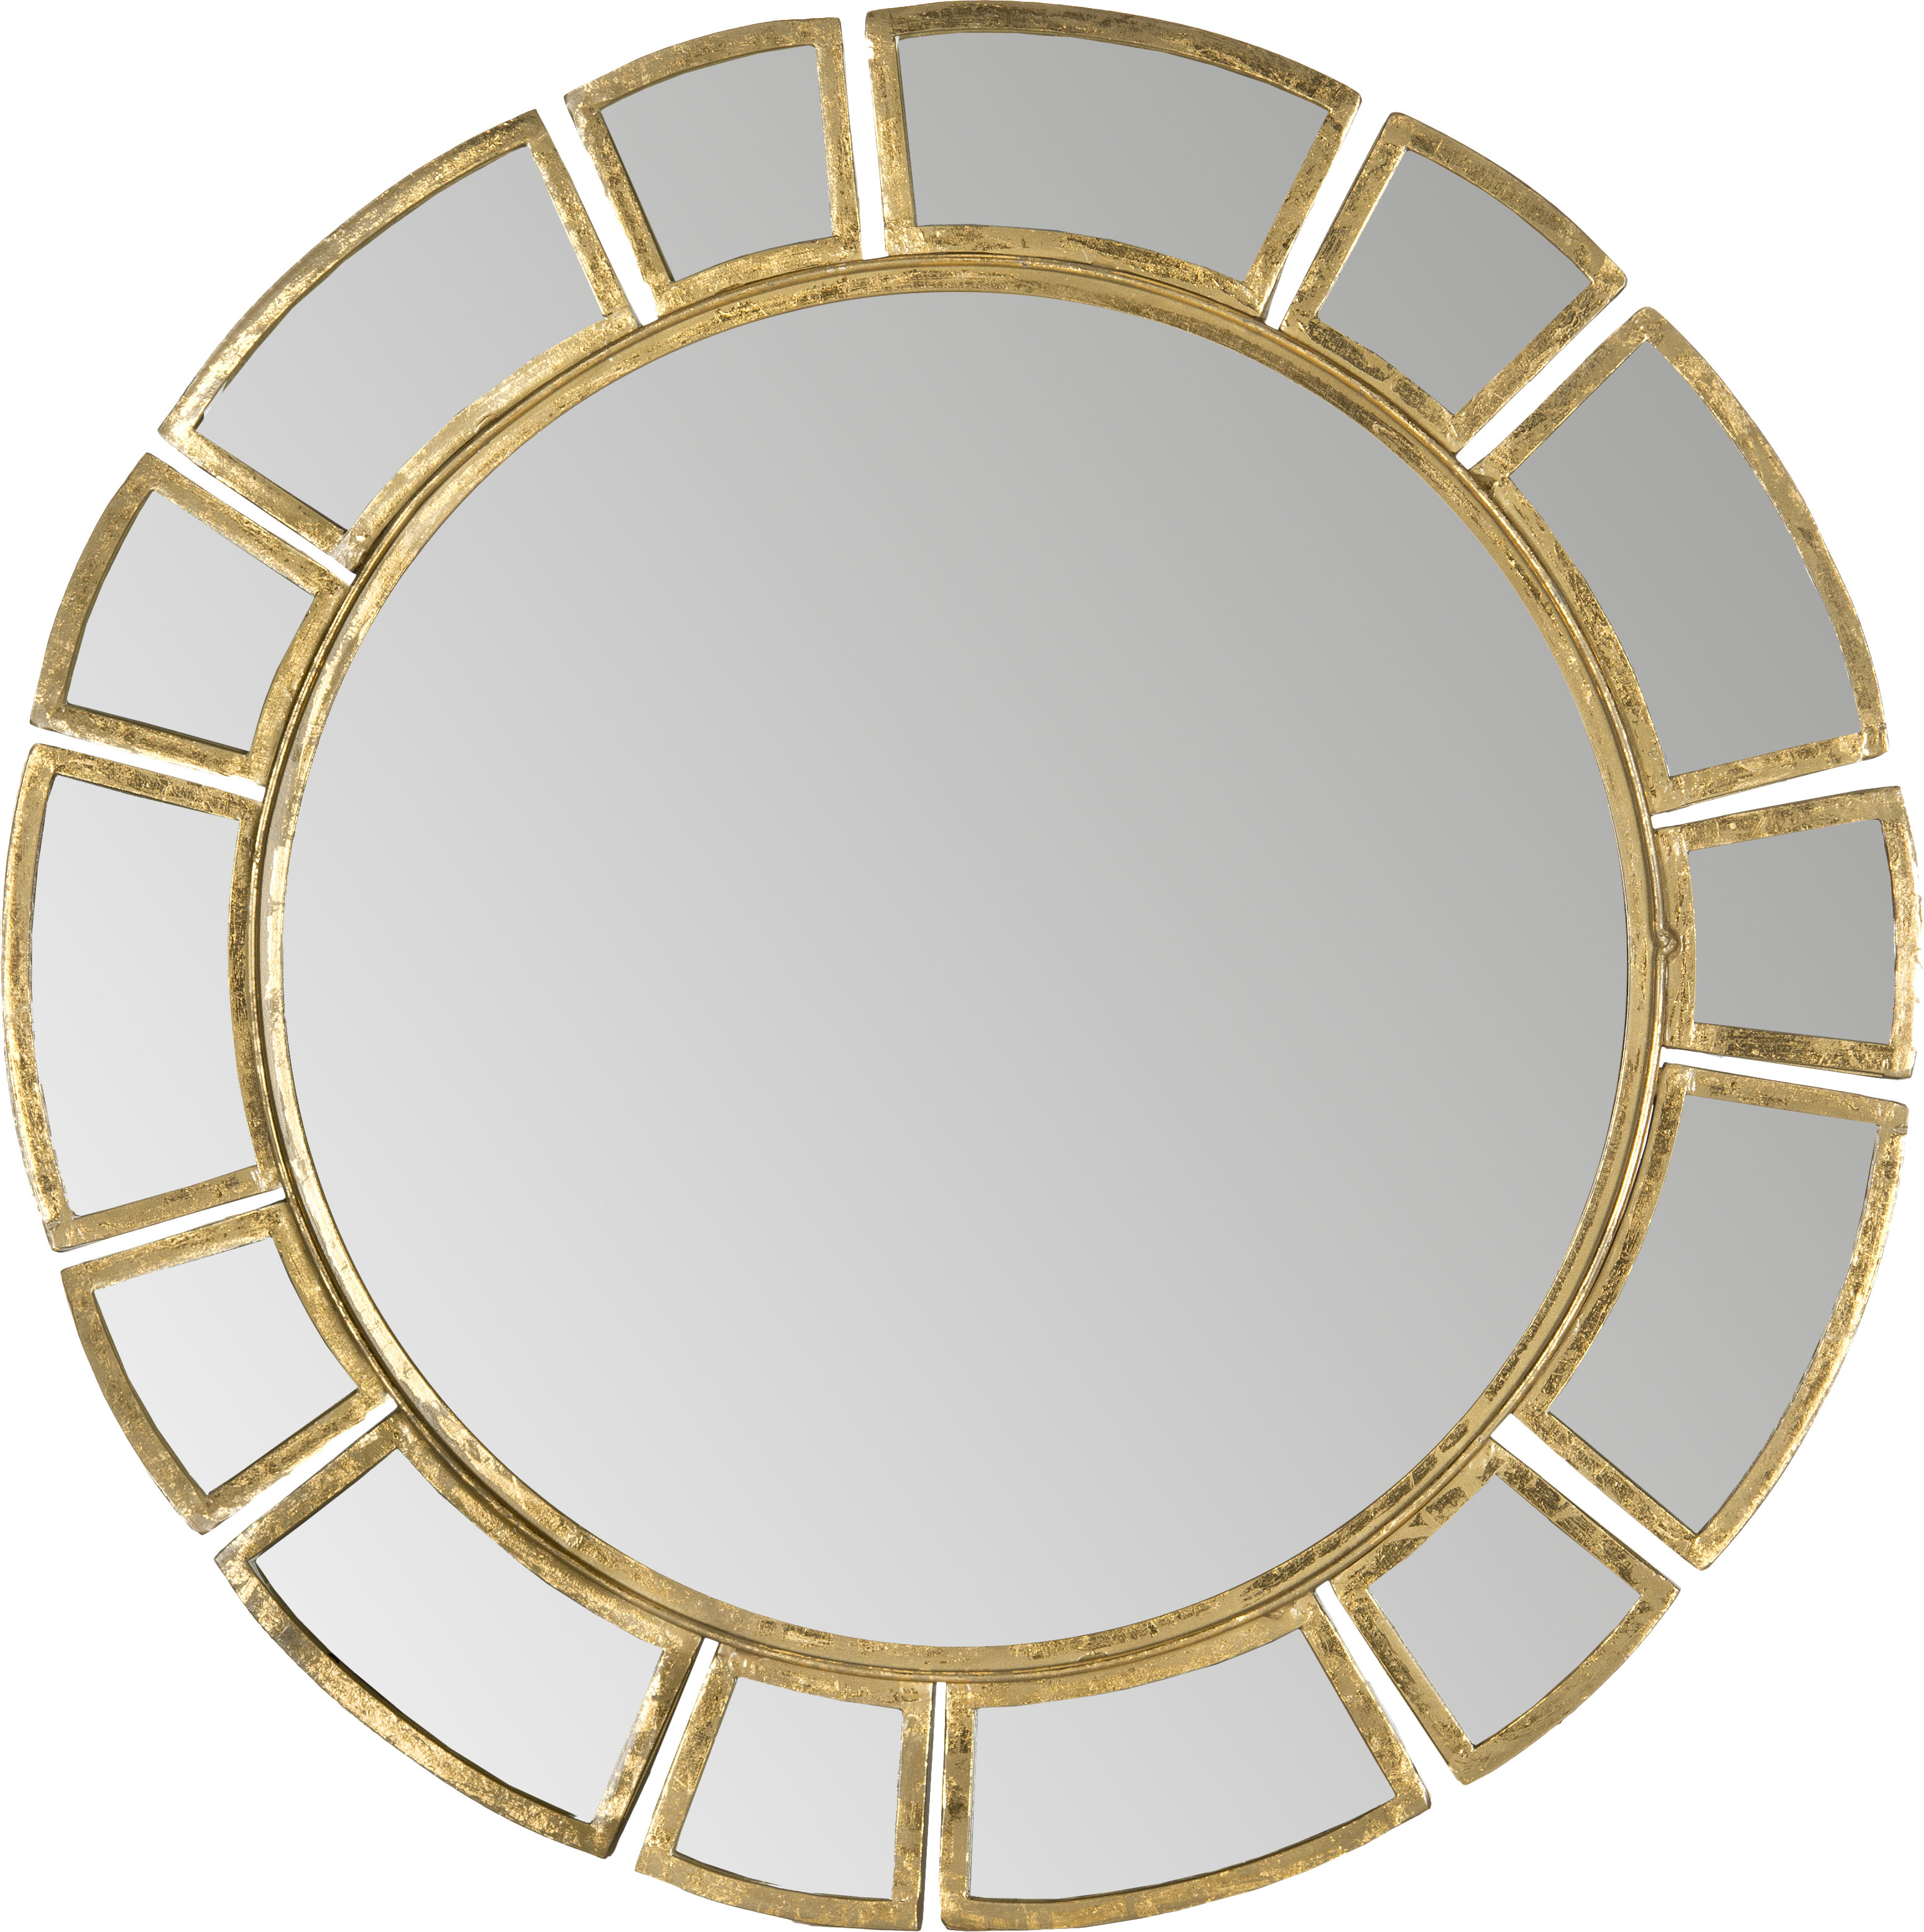 Birksgate Round Antique Gold Patina Sunburst Wall Mirror Intended For Trendy Tata Openwork Round Wall Mirrors (View 2 of 20)